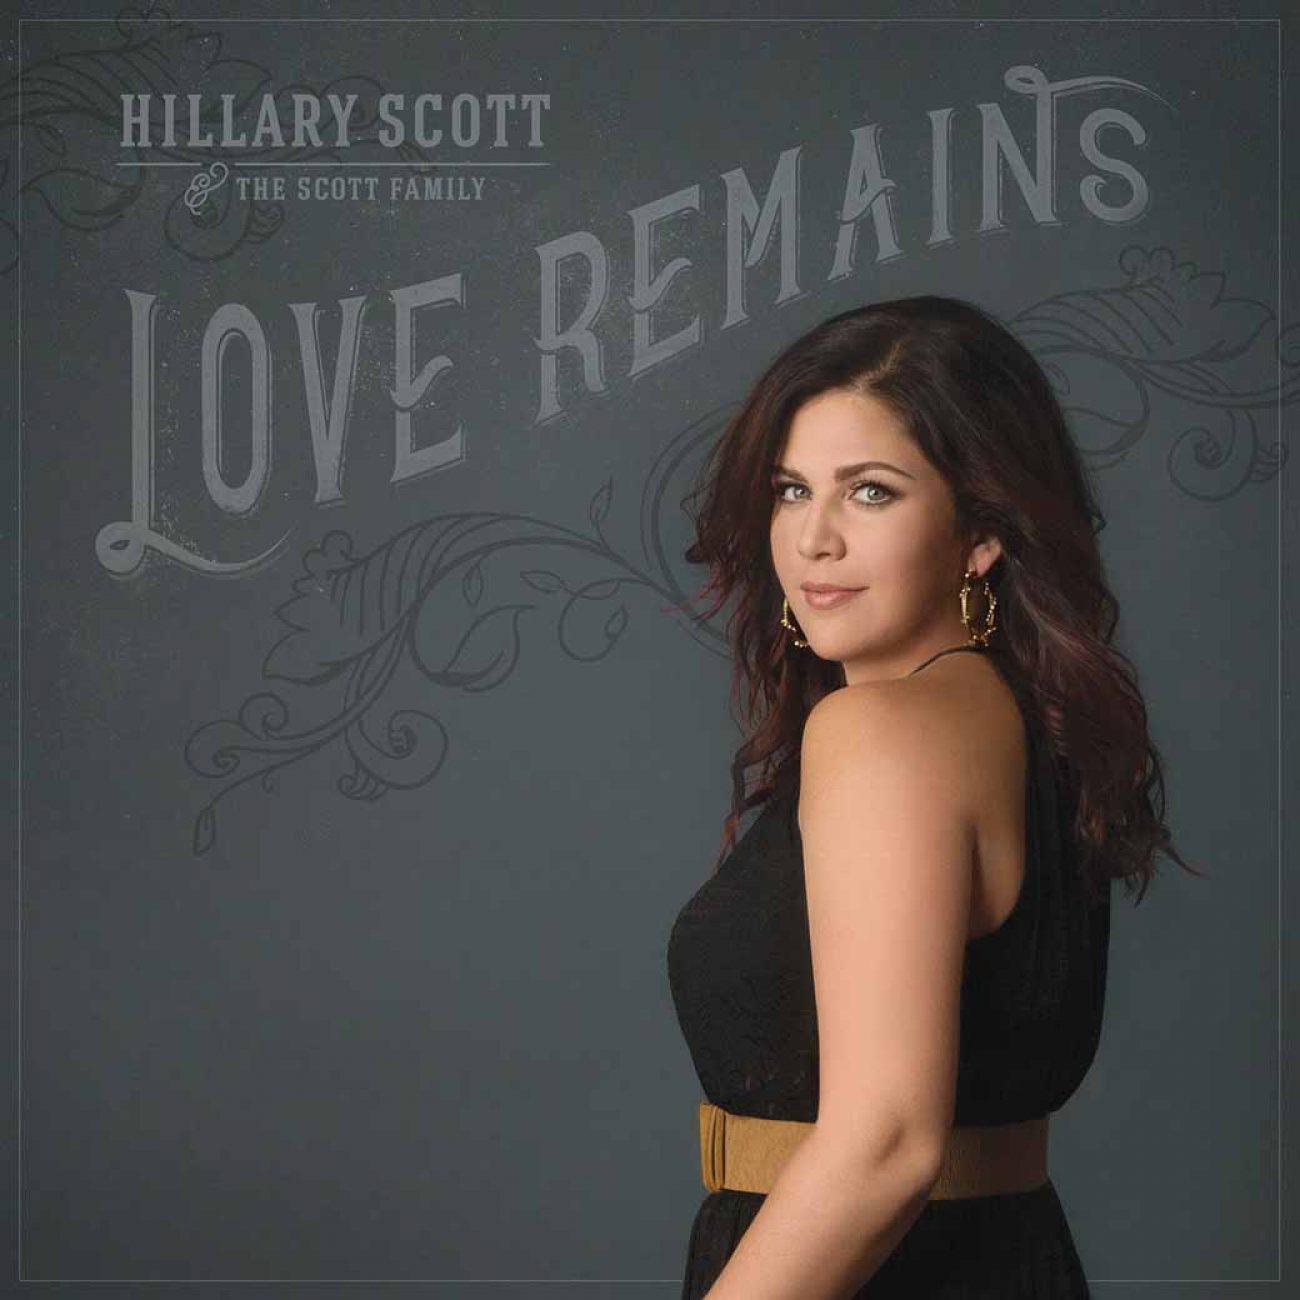 Love Remains Hillary Scott and The Scott Family Video Exclusive